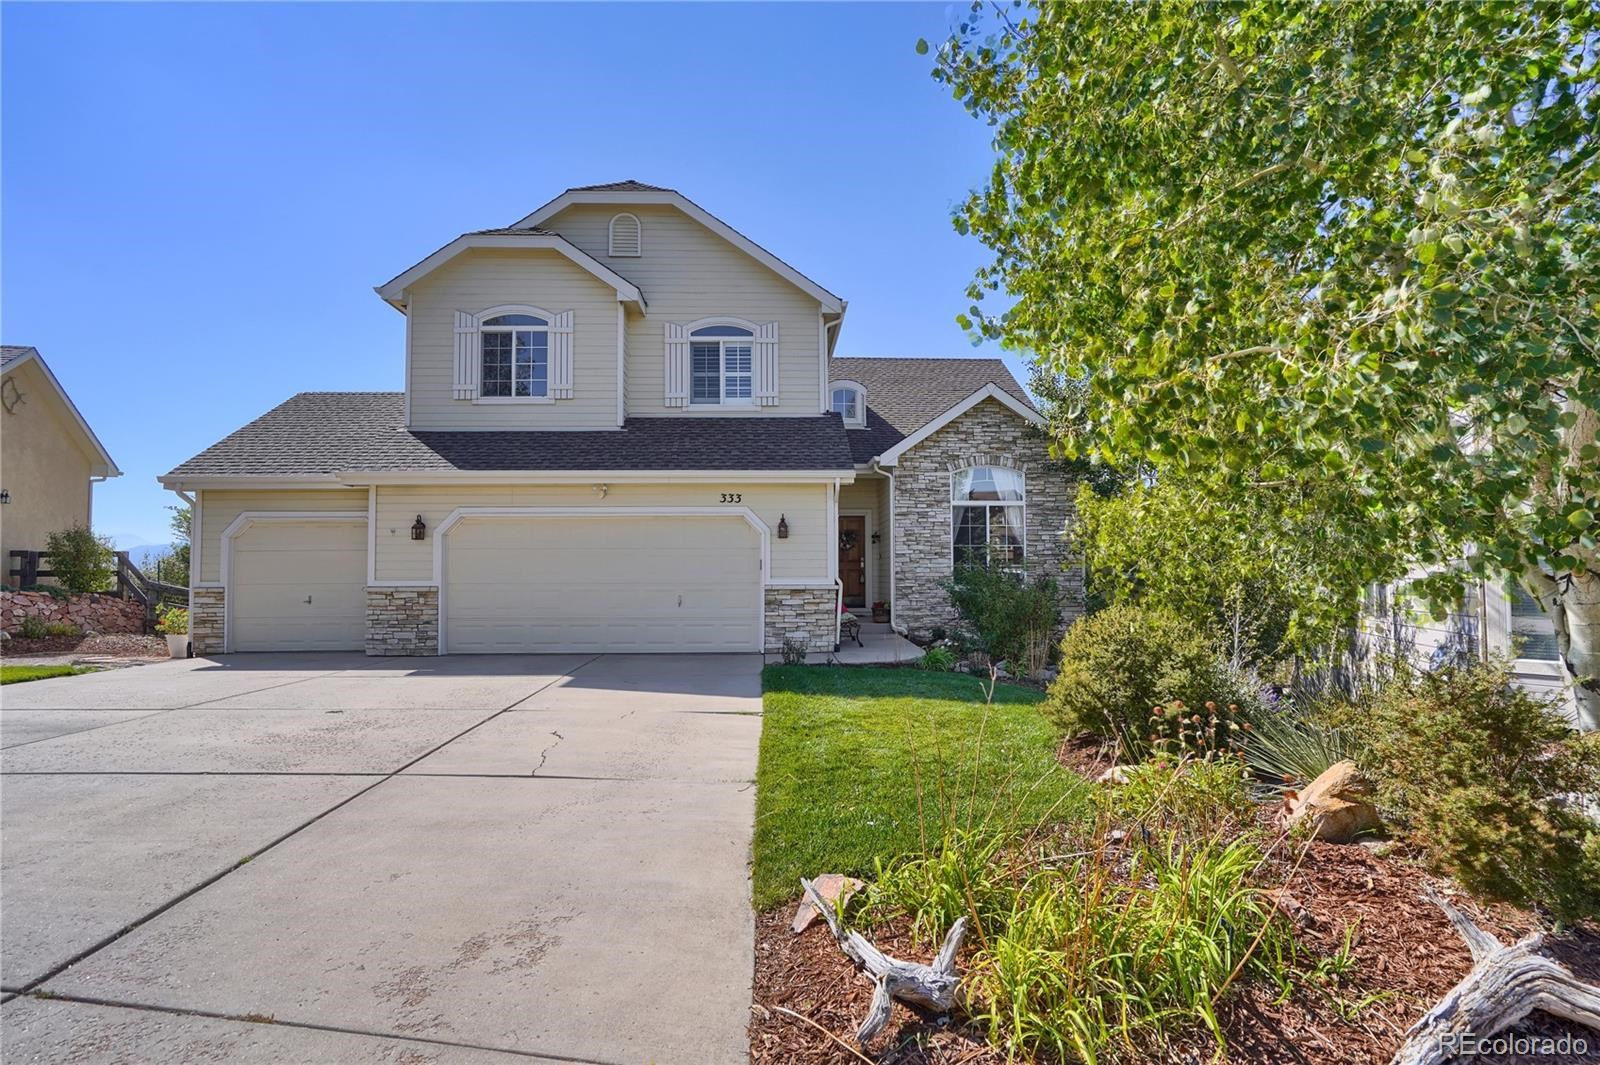 MLS# 1711572 - 1 - 333 Green Rock Place, Monument, CO 80132